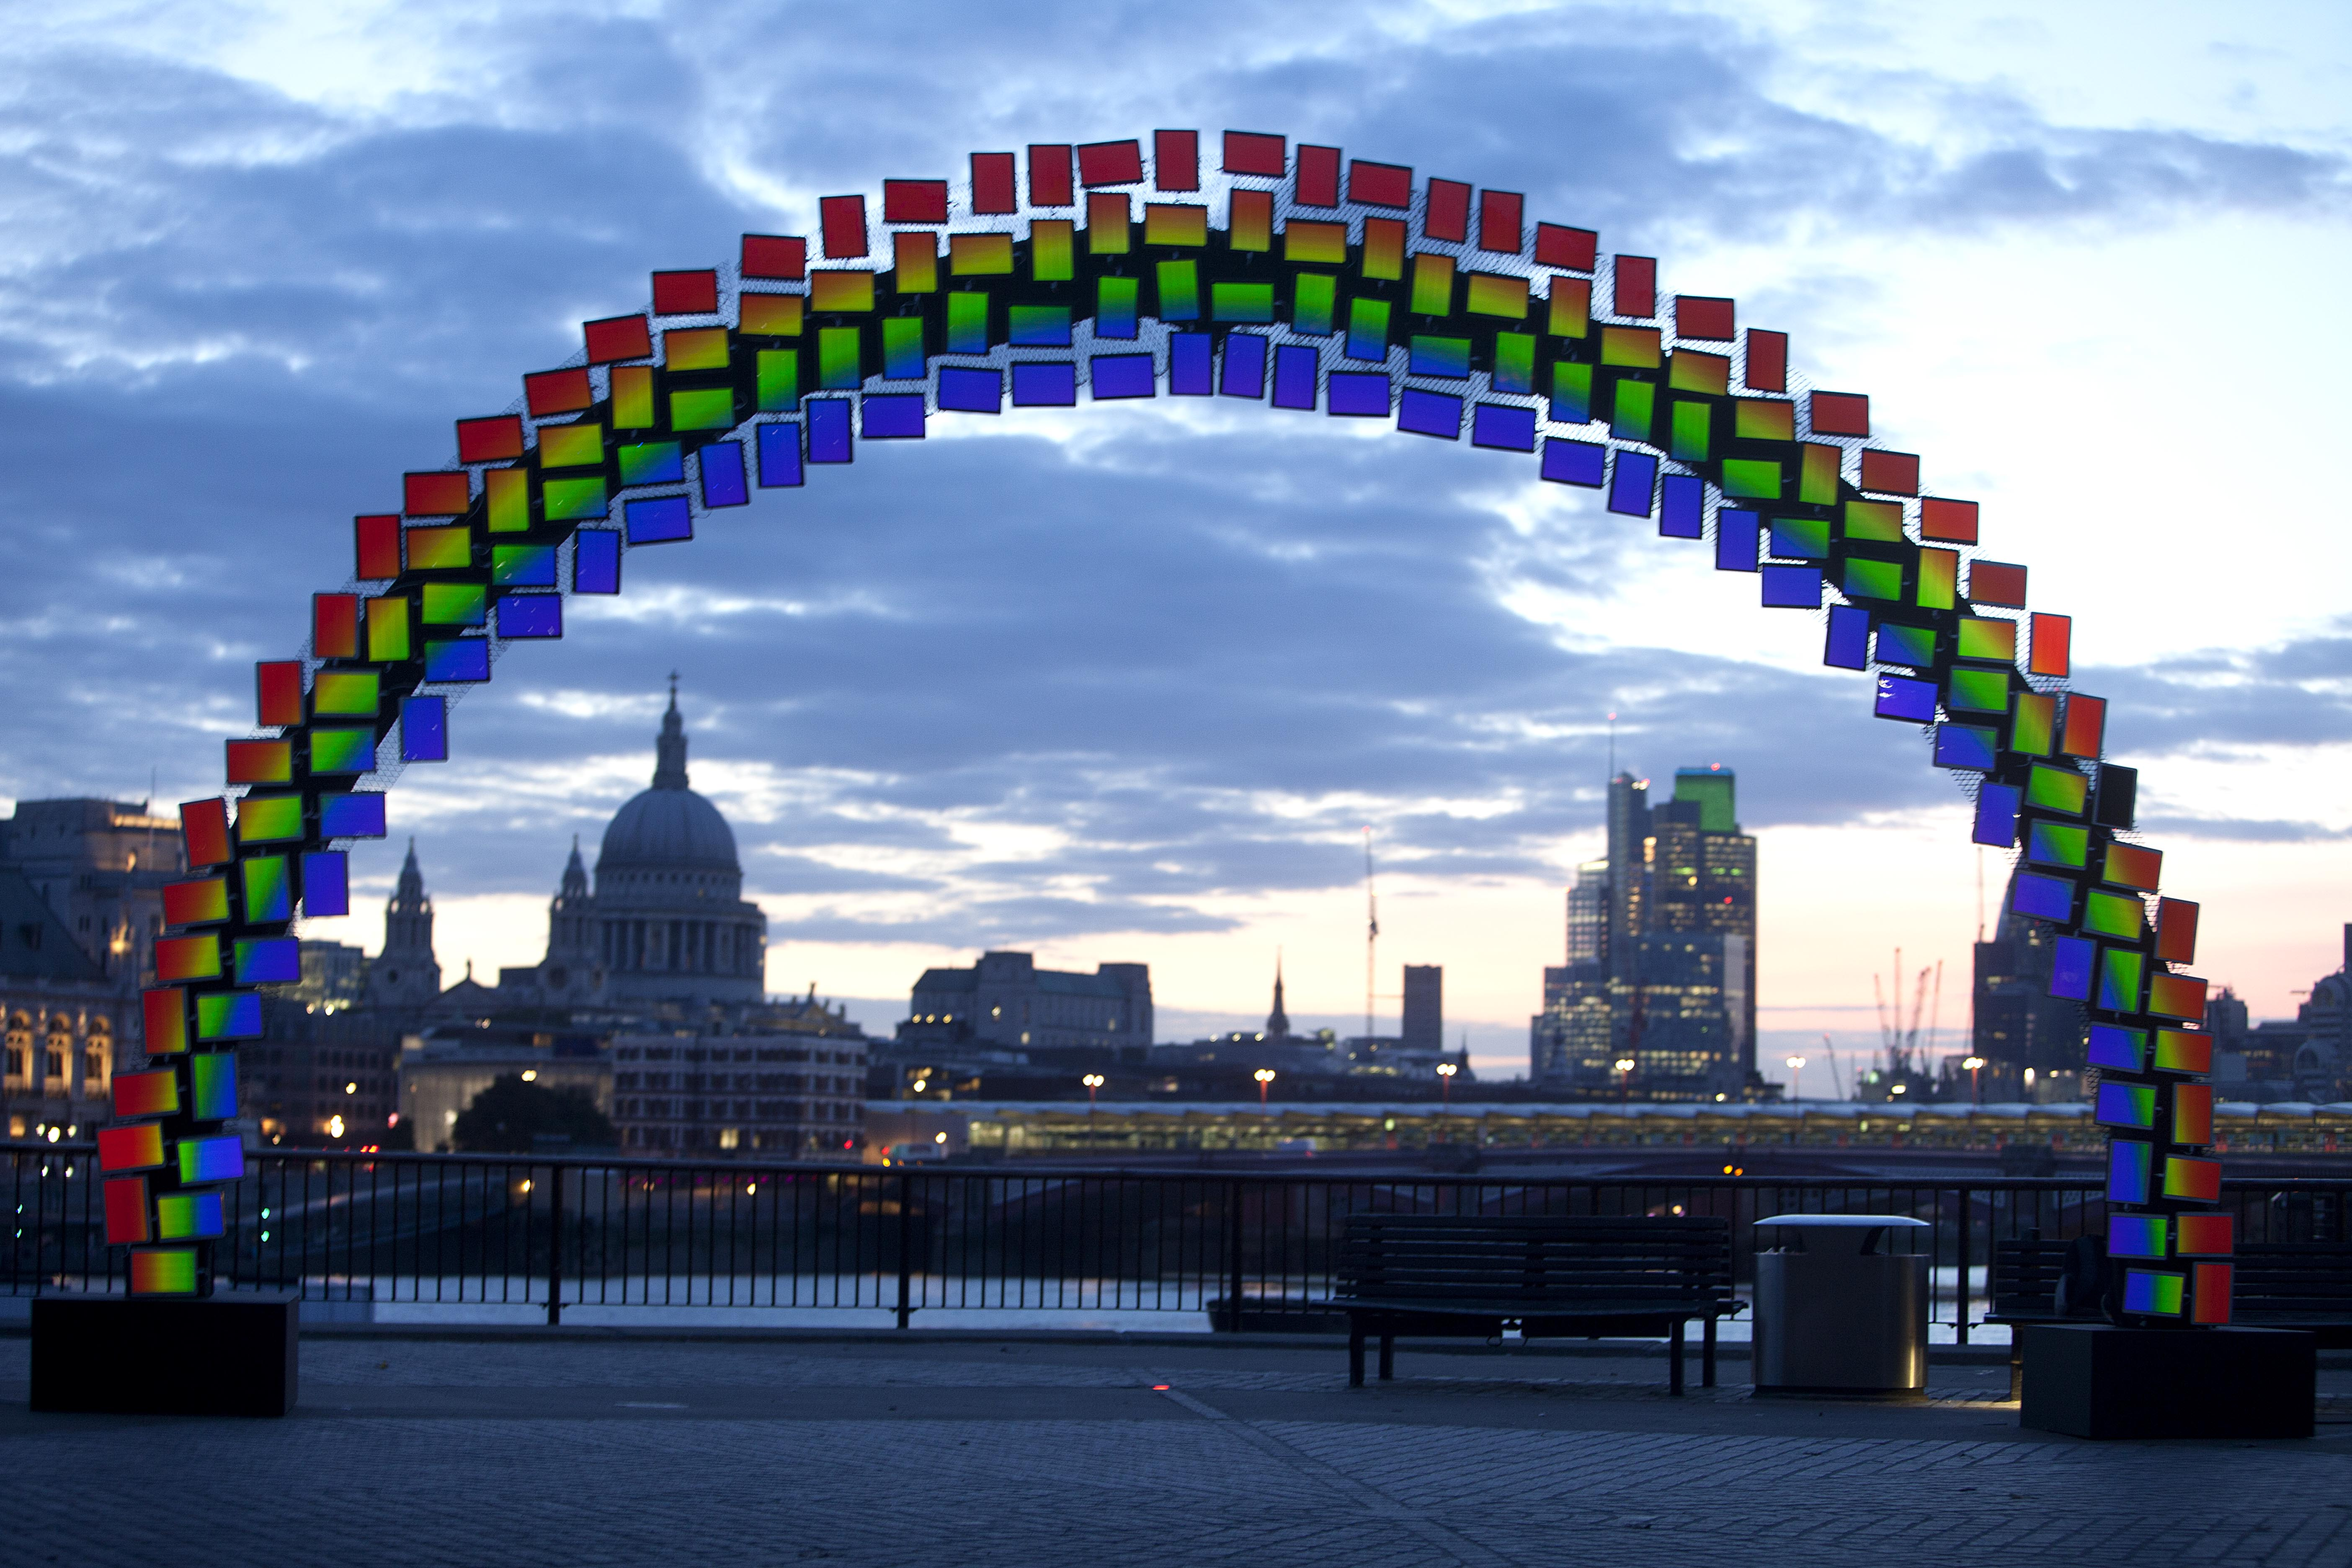 boom reviews - Samsung Galaxy Tab S midnight rainbow on London's South Bank